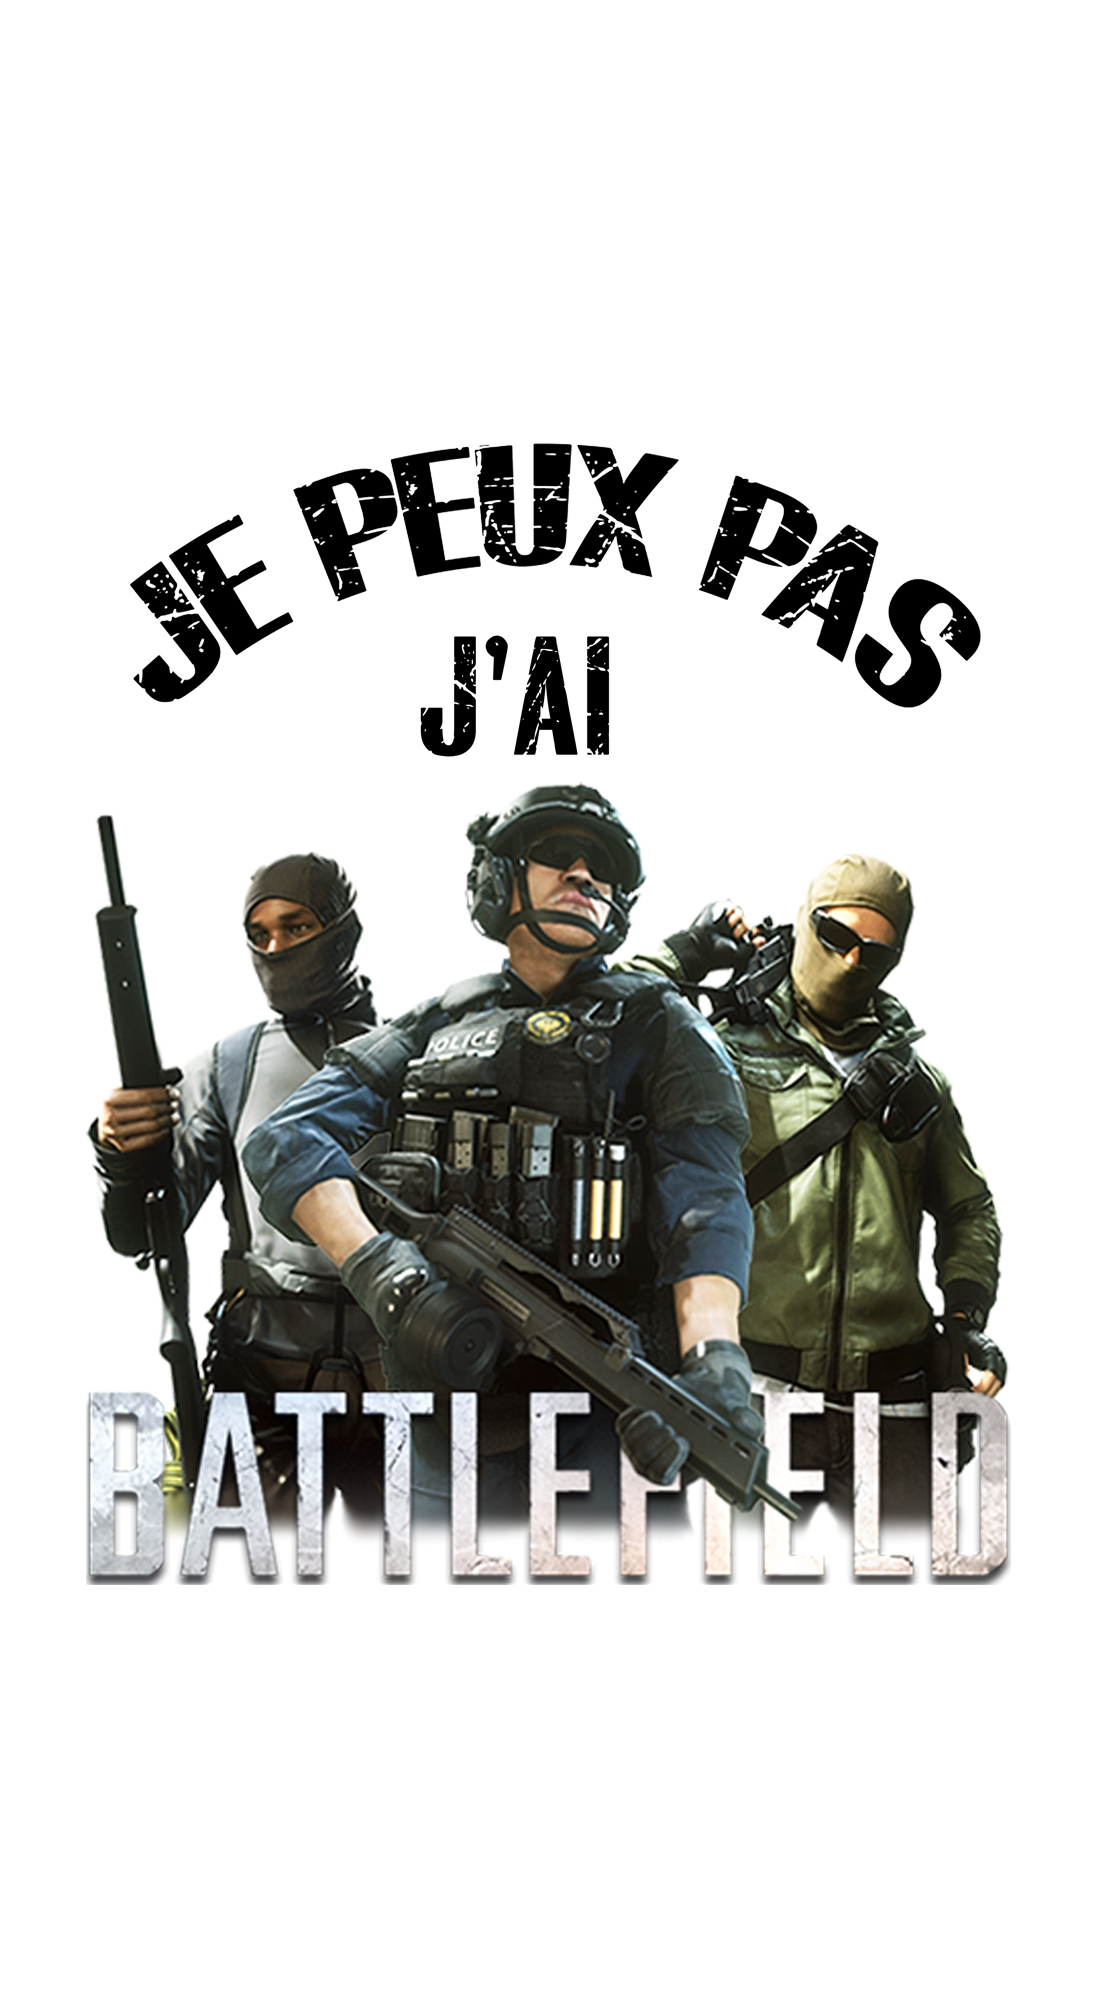 Je peux pas jai battlefield Case for